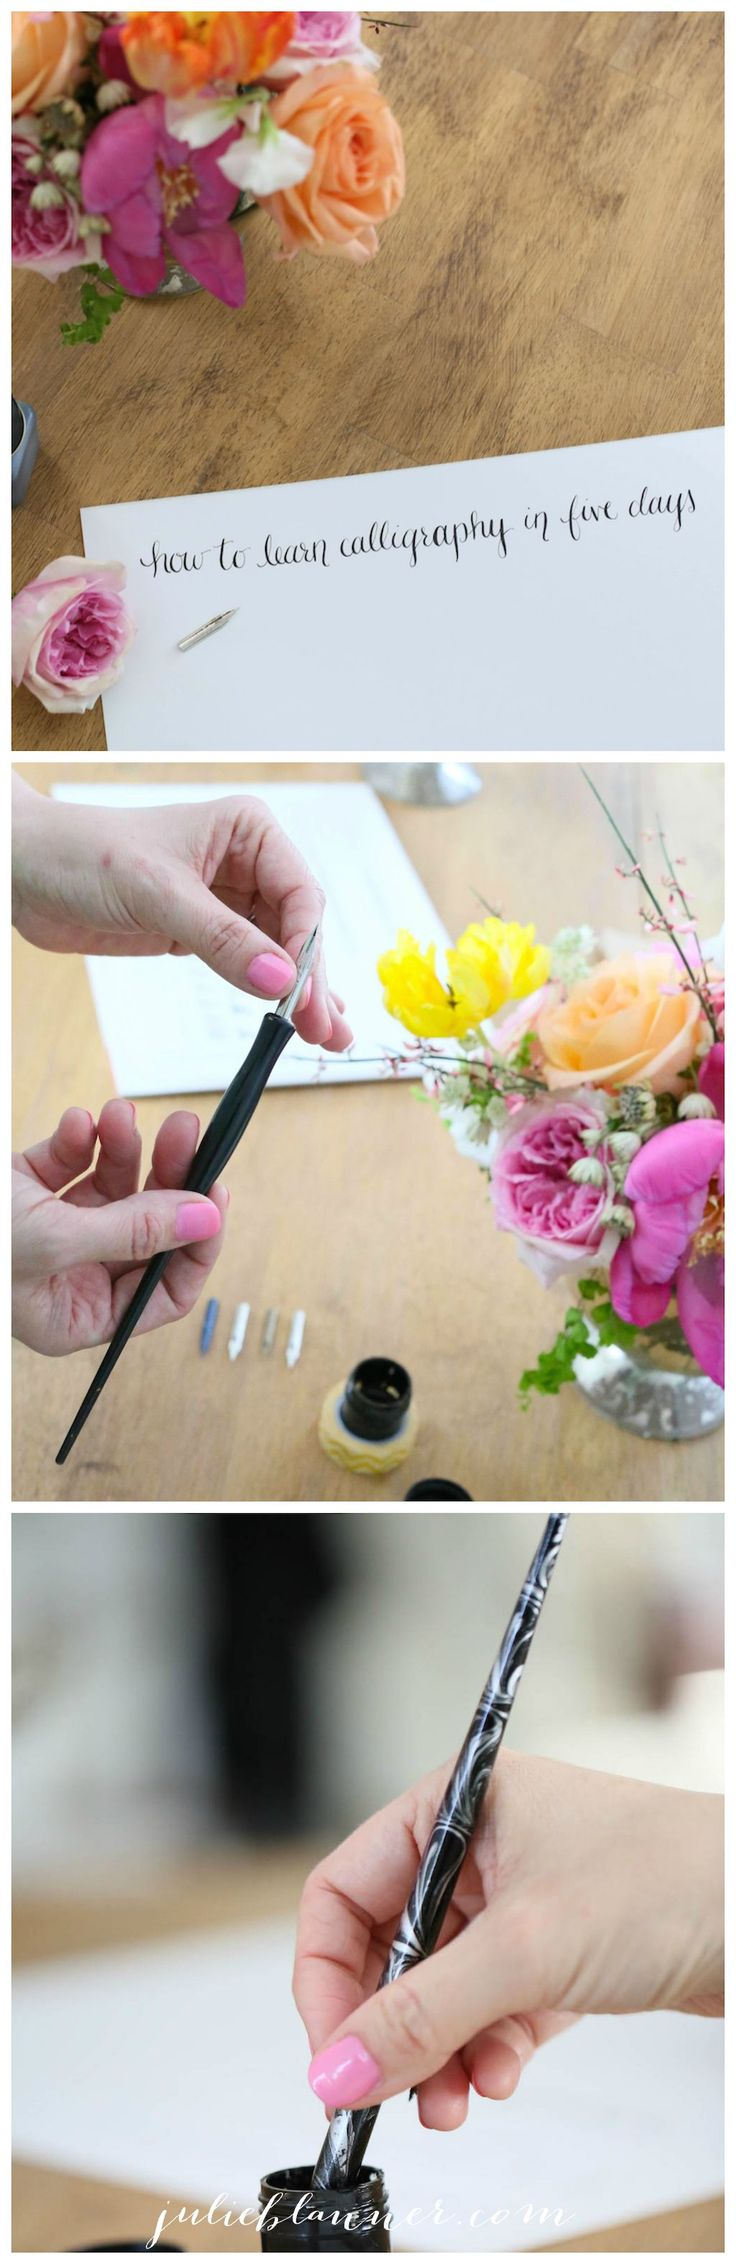 How to learn calligraphy - learn what supplies you need, download free printable practice sheets & step by step instructions to learning calligraphy!